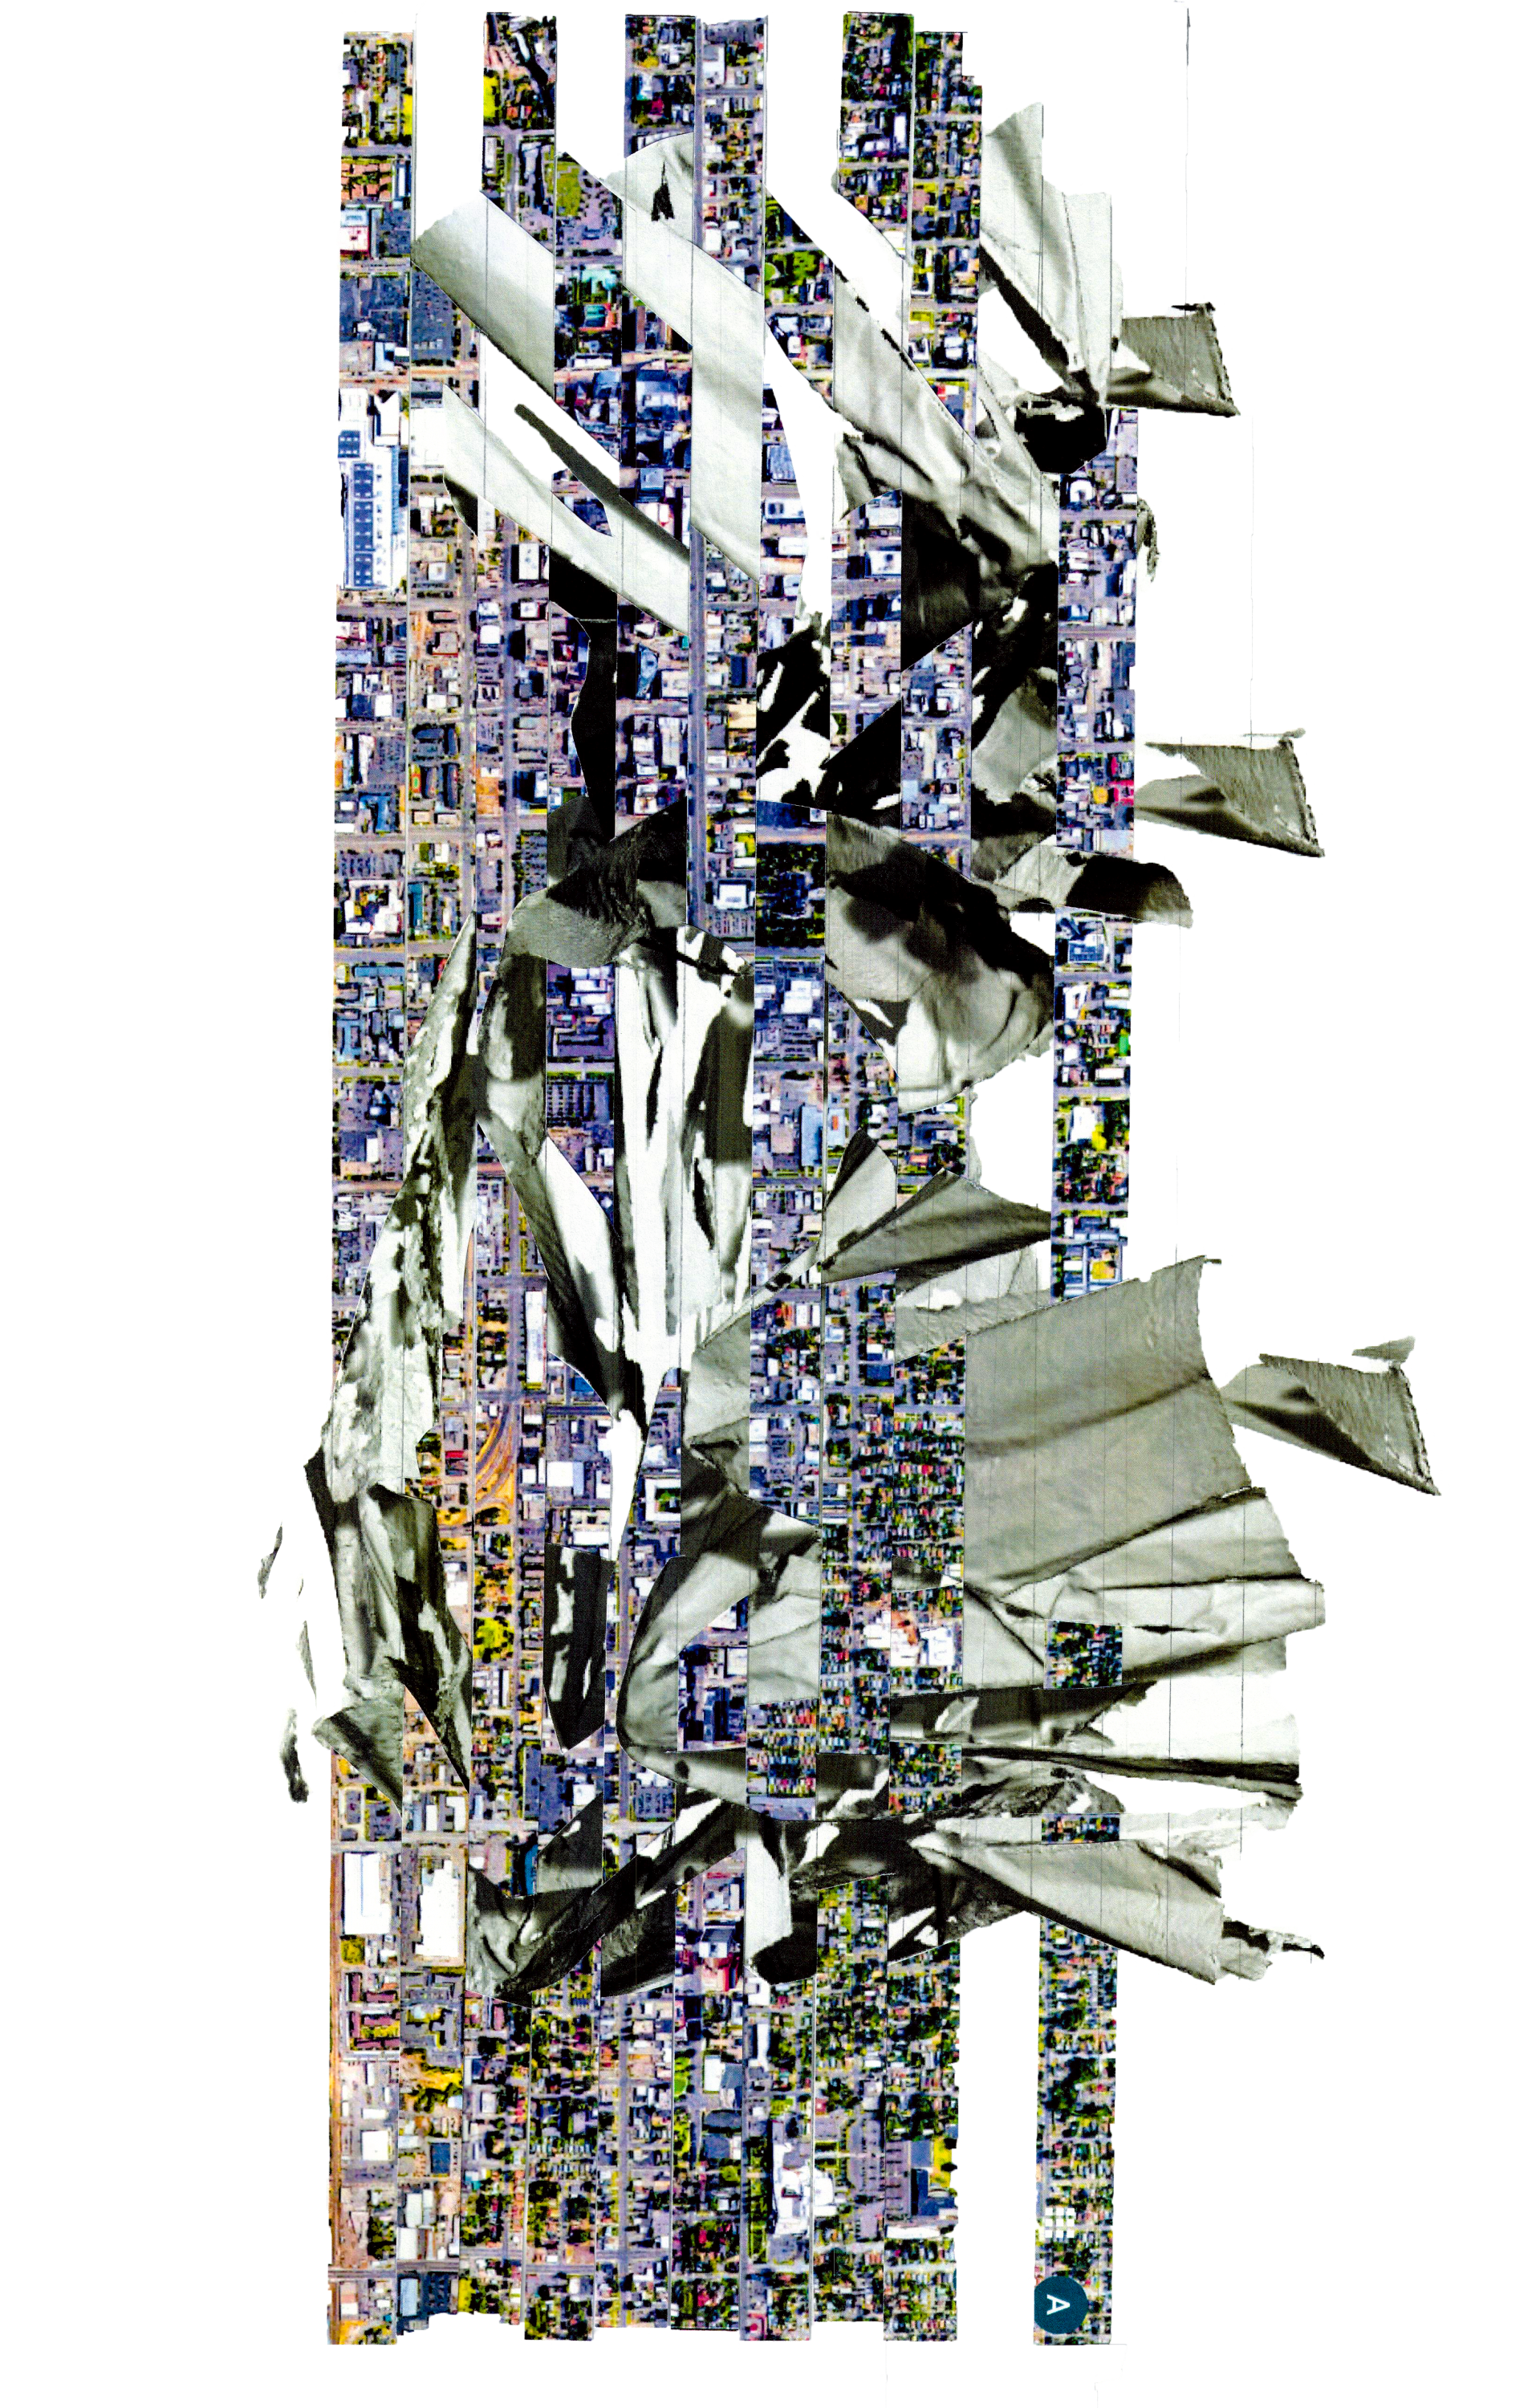 """Satellite photos of Salt Lake City, Utah spliced/woven into images of my digital """"scape"""" model."""